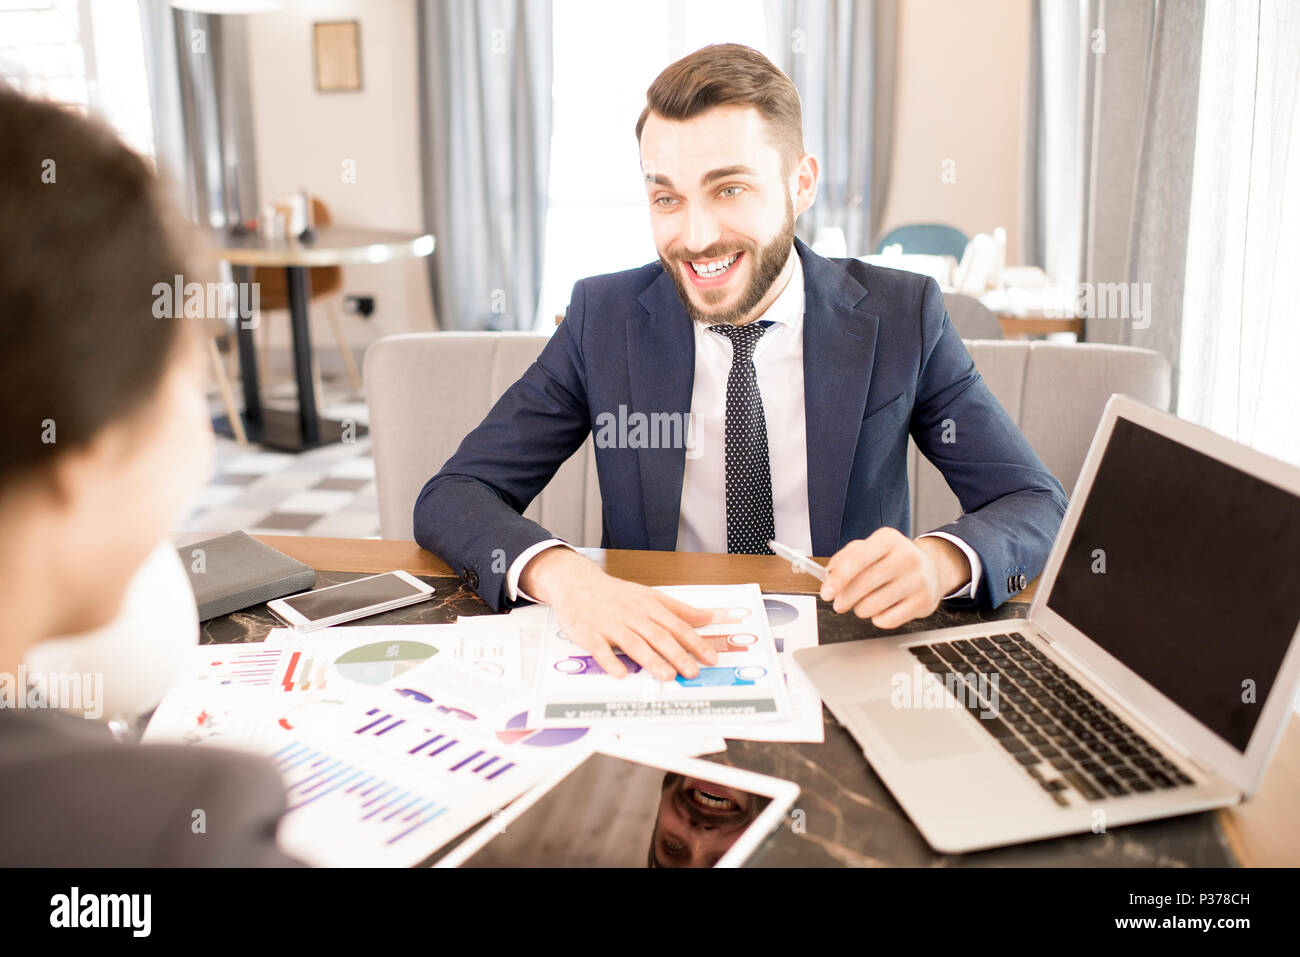 Excited business analyst working with colleague in cafe - Stock Image